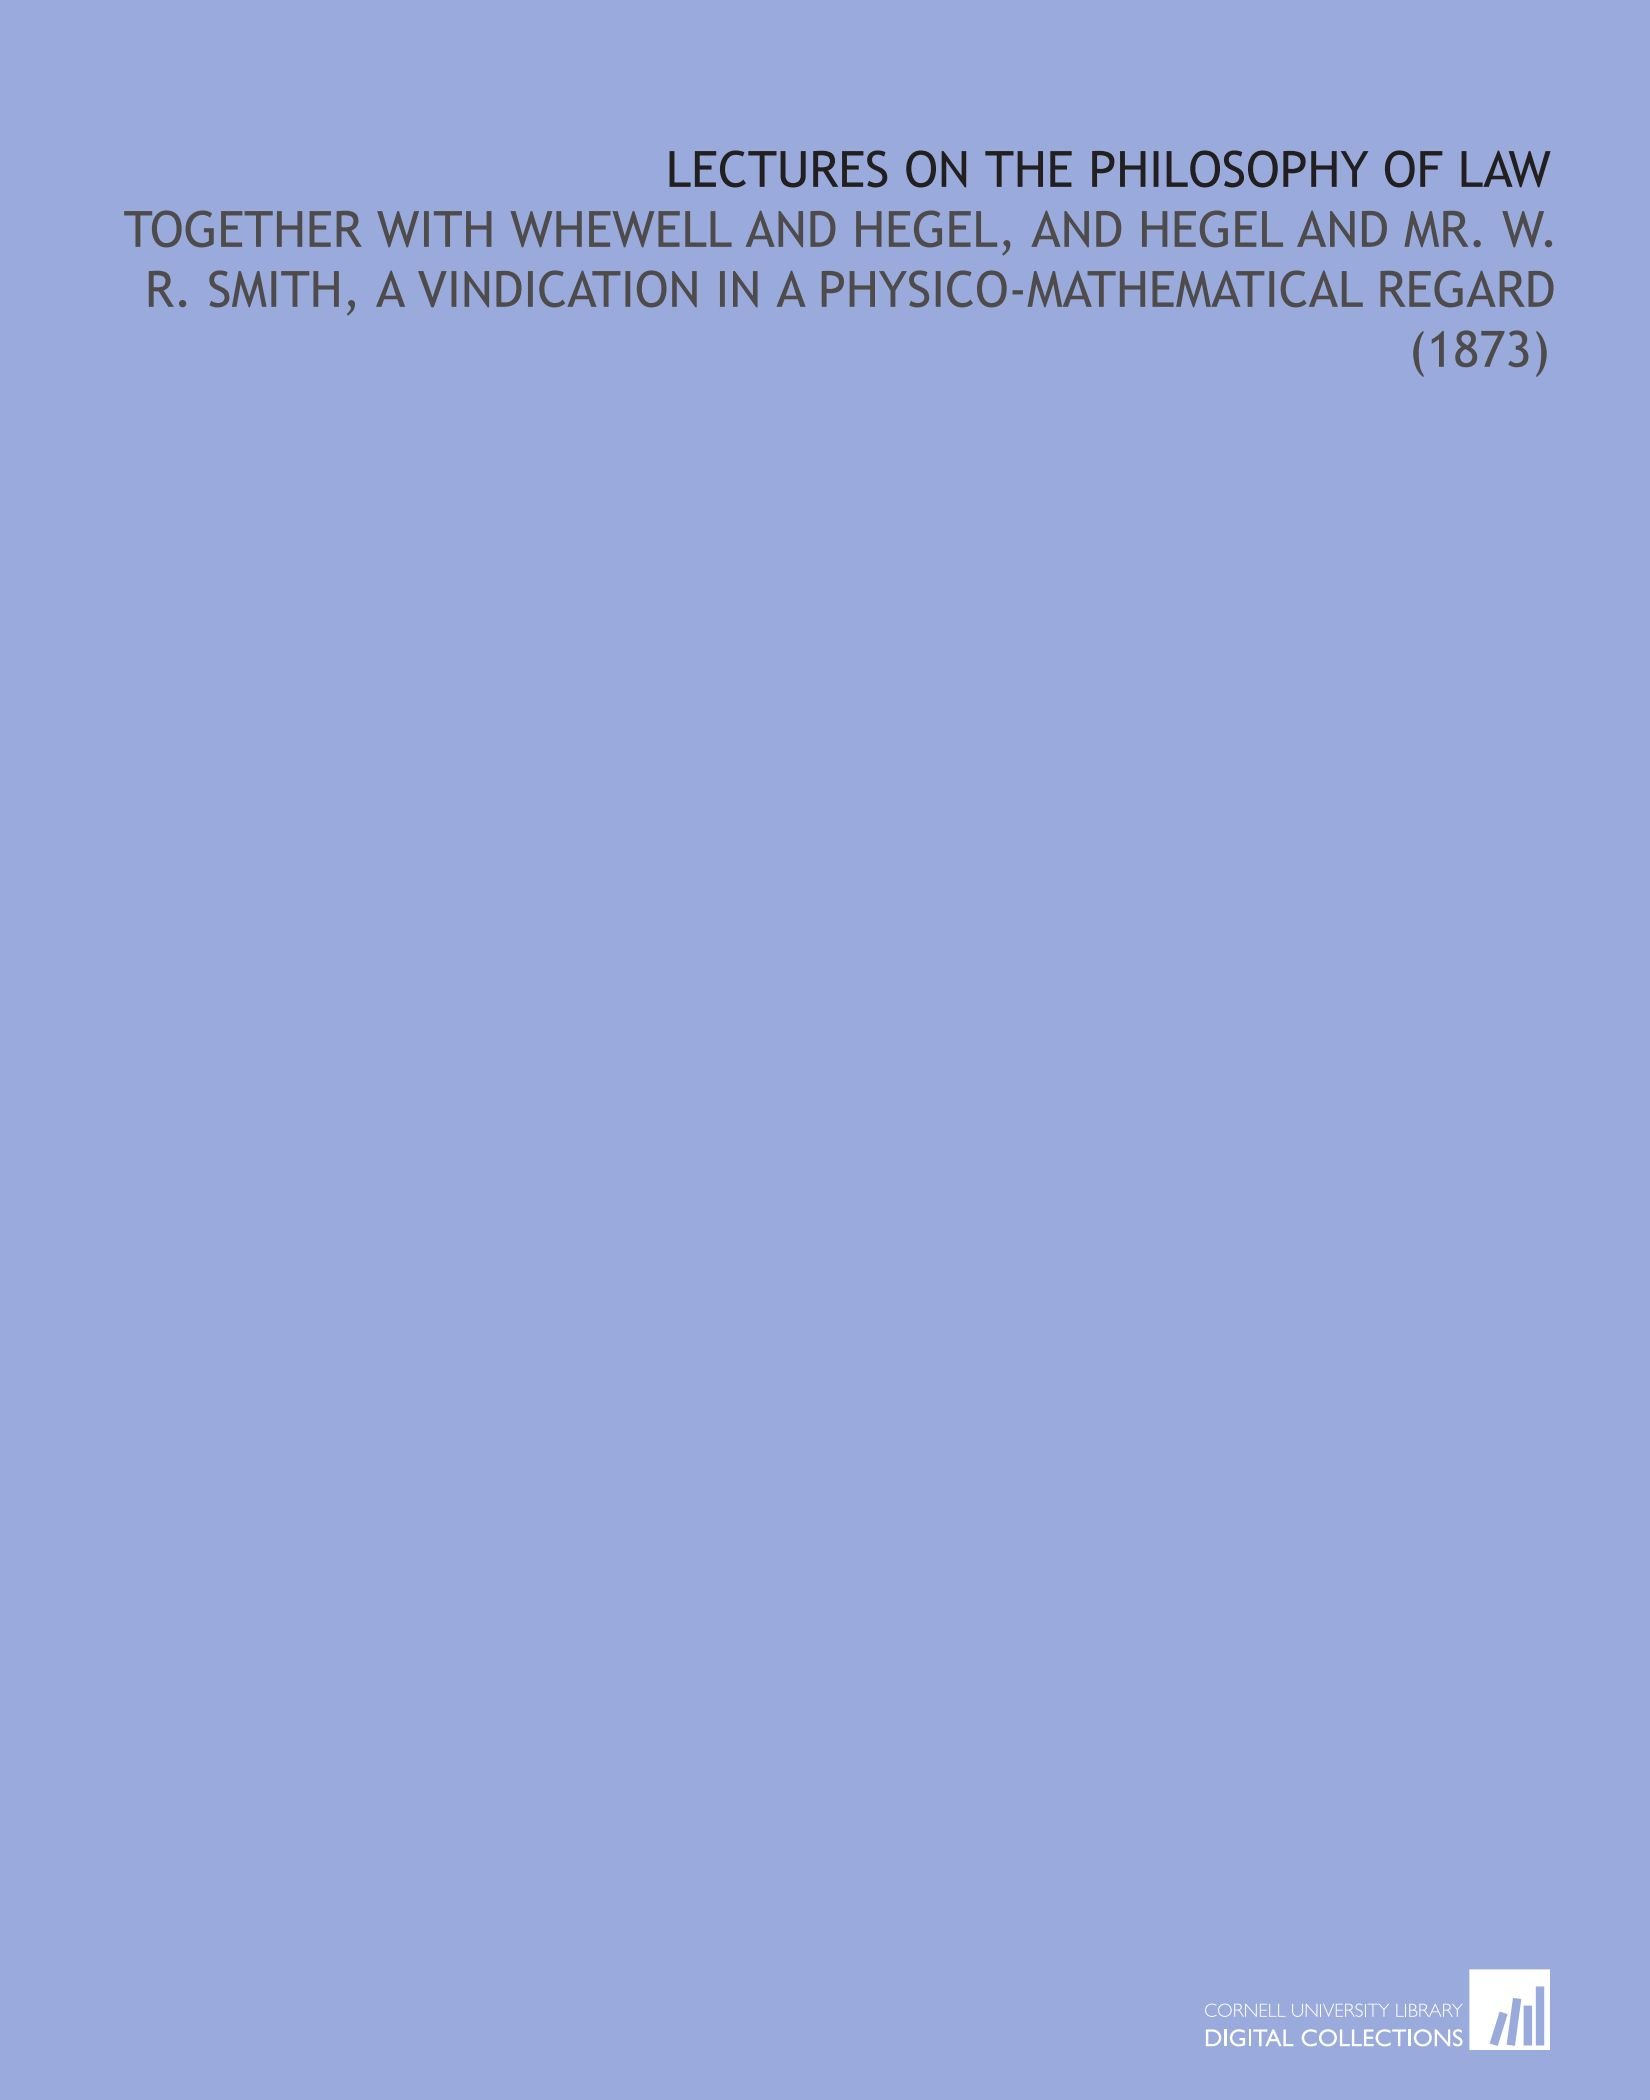 Lectures On the Philosophy of Law: Together With Whewell and Hegel, and Hegel and Mr. W. R. Smith, a Vindication in a Physico-Mathematical Regard (1873) PDF